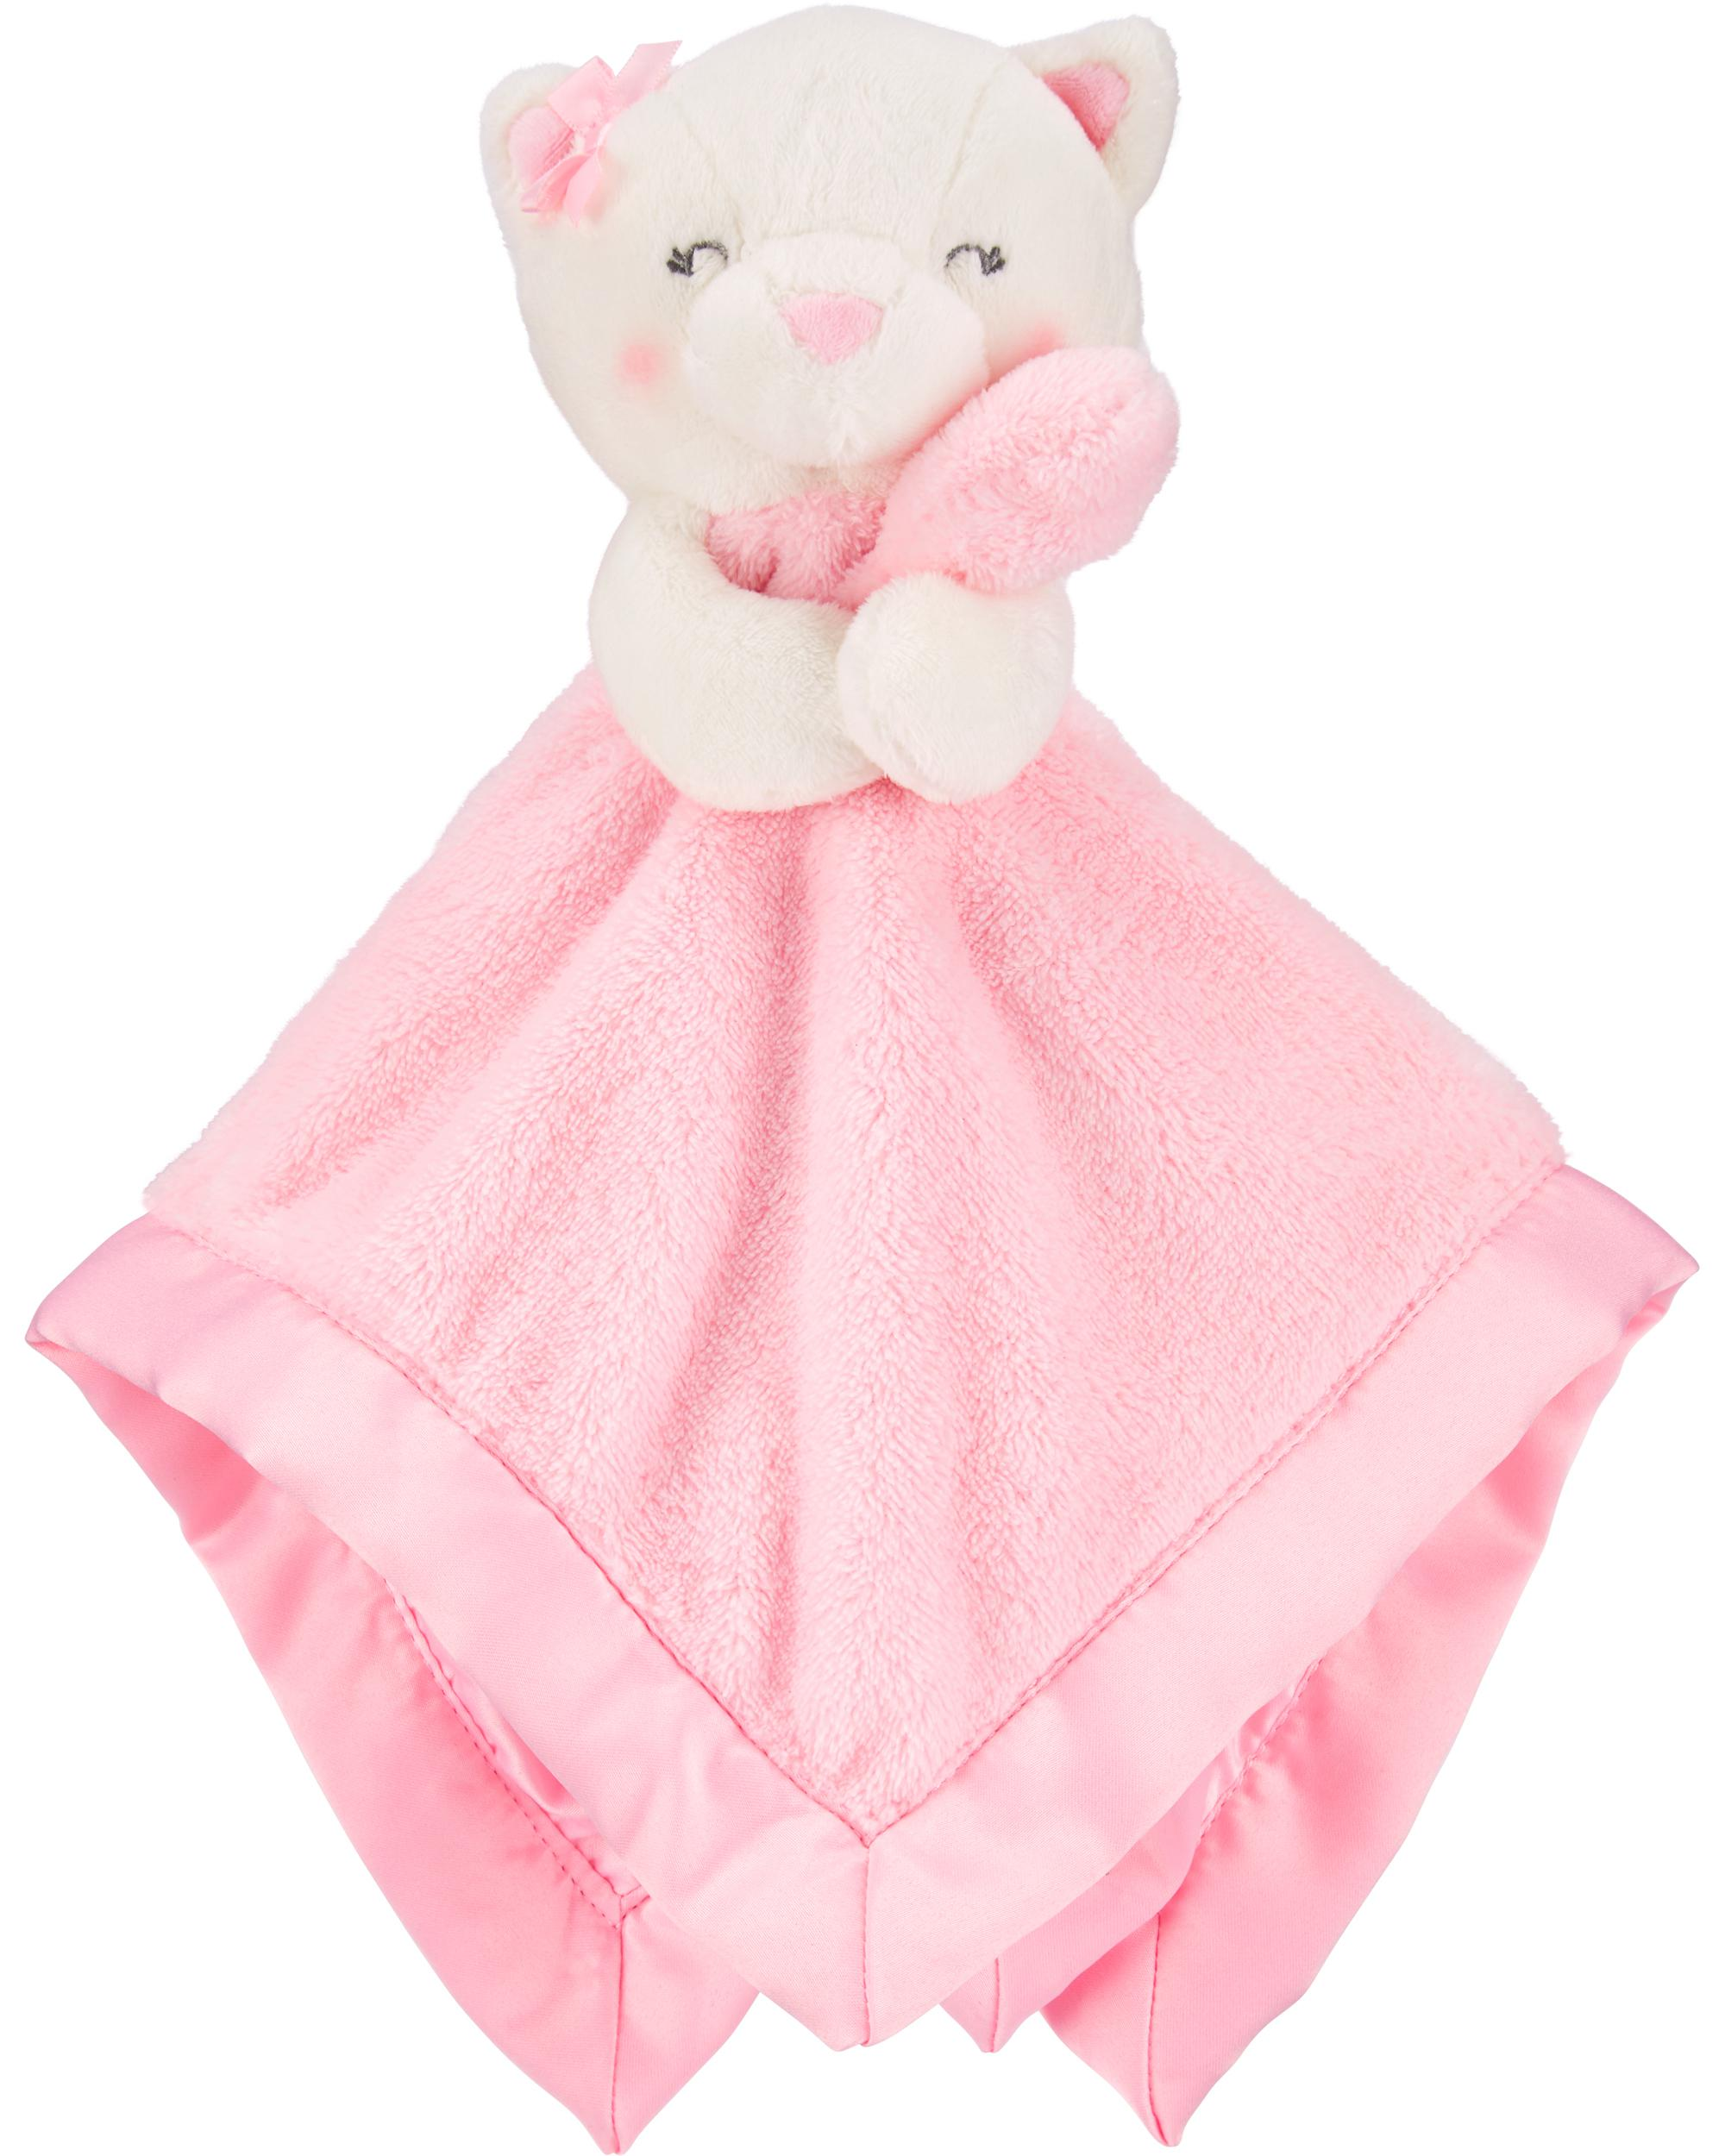 Carter's Baby Infant Girls Pink White Kitty Cat Security Blanket Lovey-carters blankets, security blanket, lovey, lovie, lovies, loveys, nunu, snuggle buddy, baby shower gift, kitty cat, plush gifts, plush cat